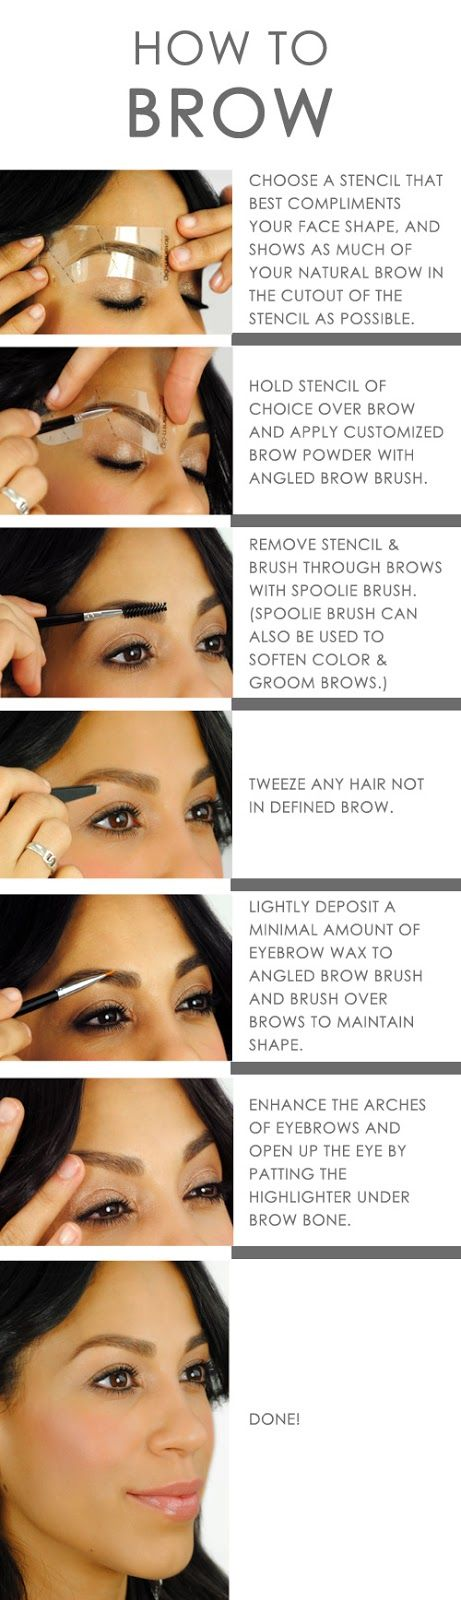 @Colorado Springs Dermatology Clinic CSDC glo How-To: Define Your Brows